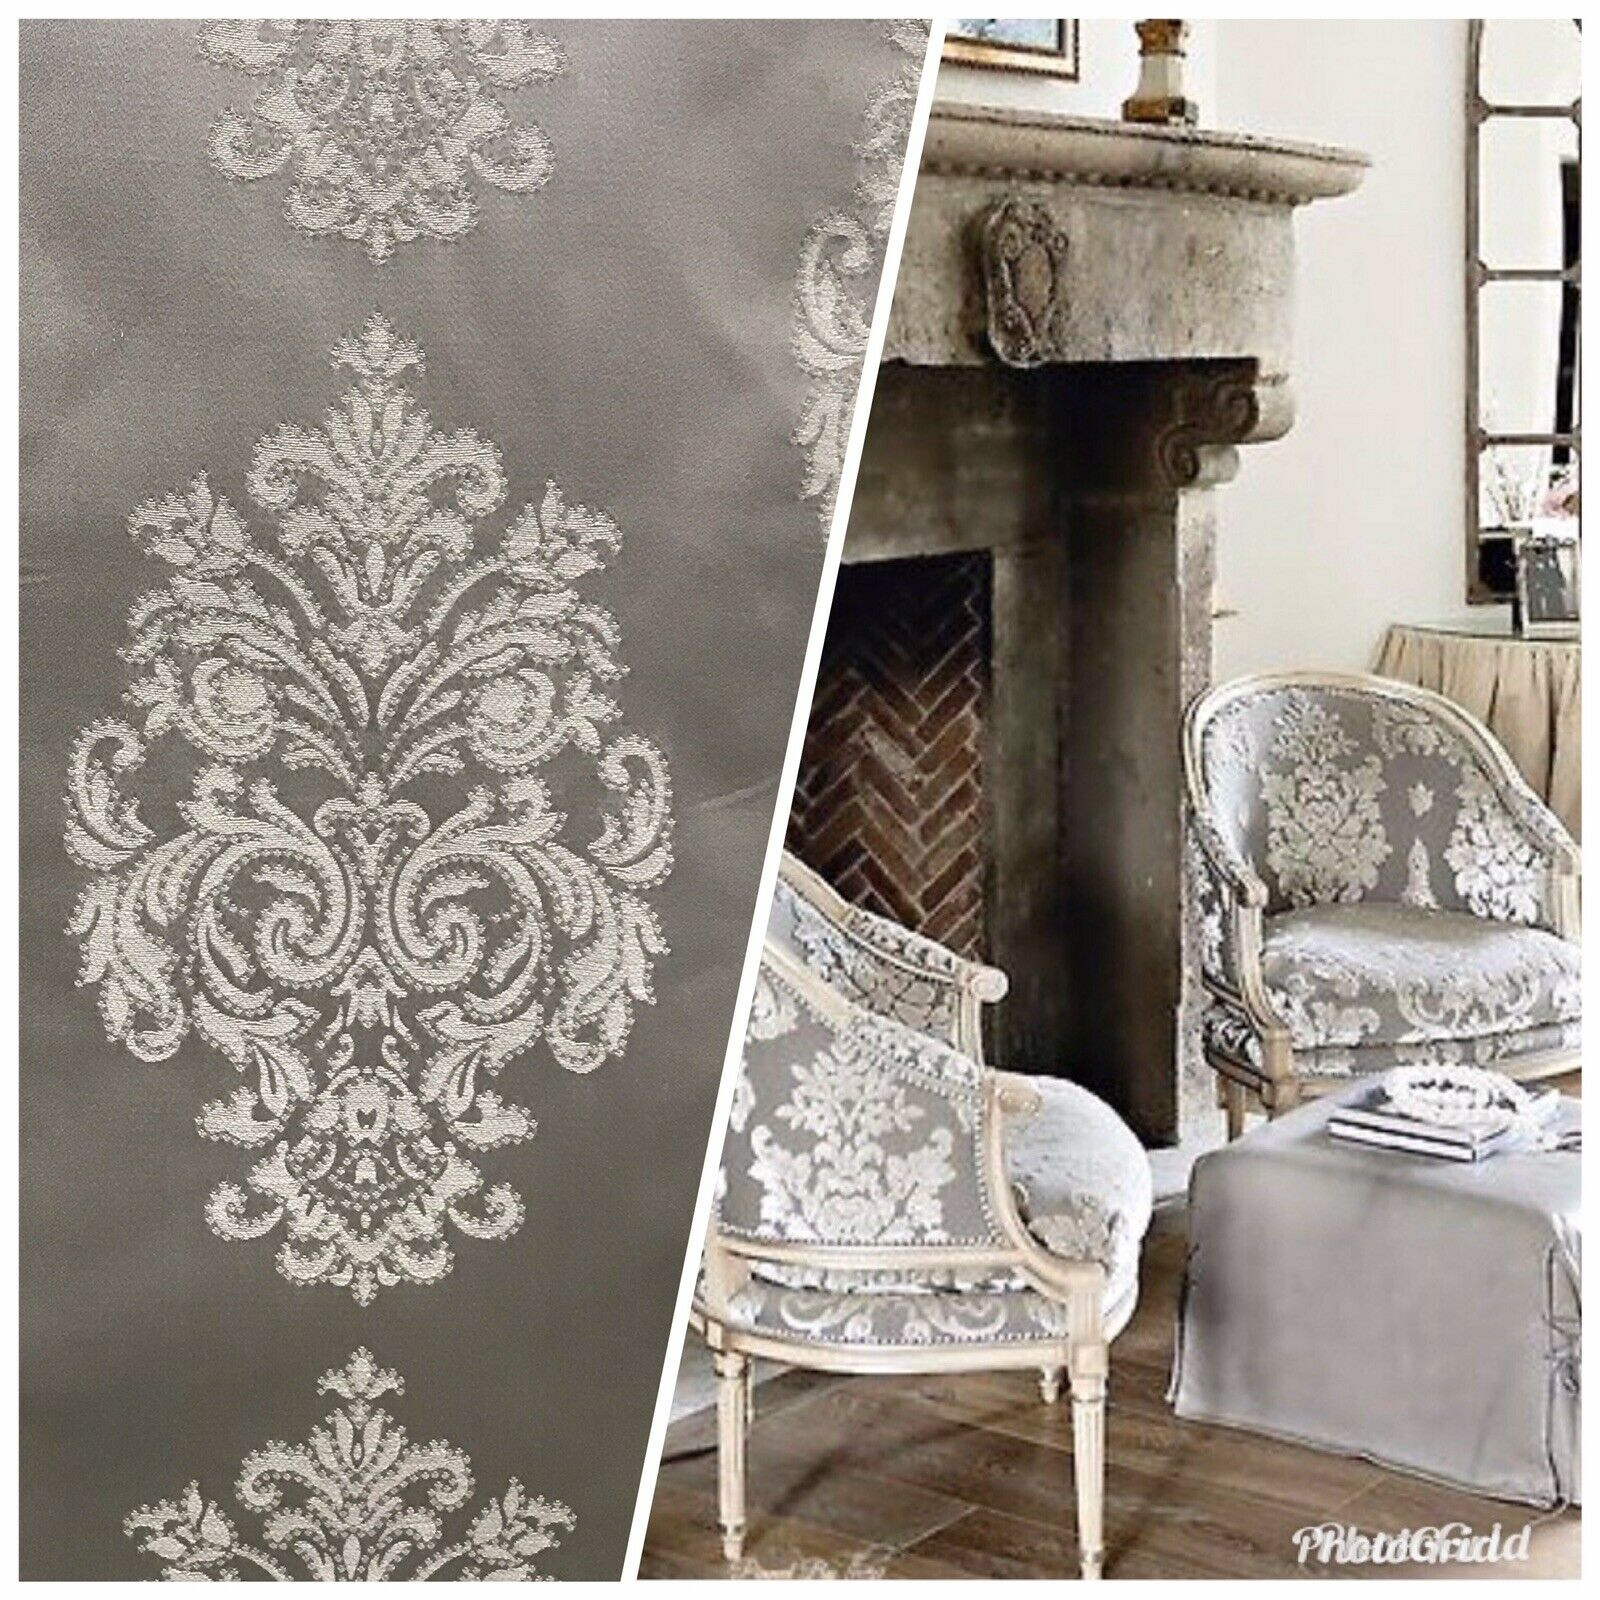 NEW Designer Satin Damask Brocade Upholstery Drapery Fabric - Gray BTY